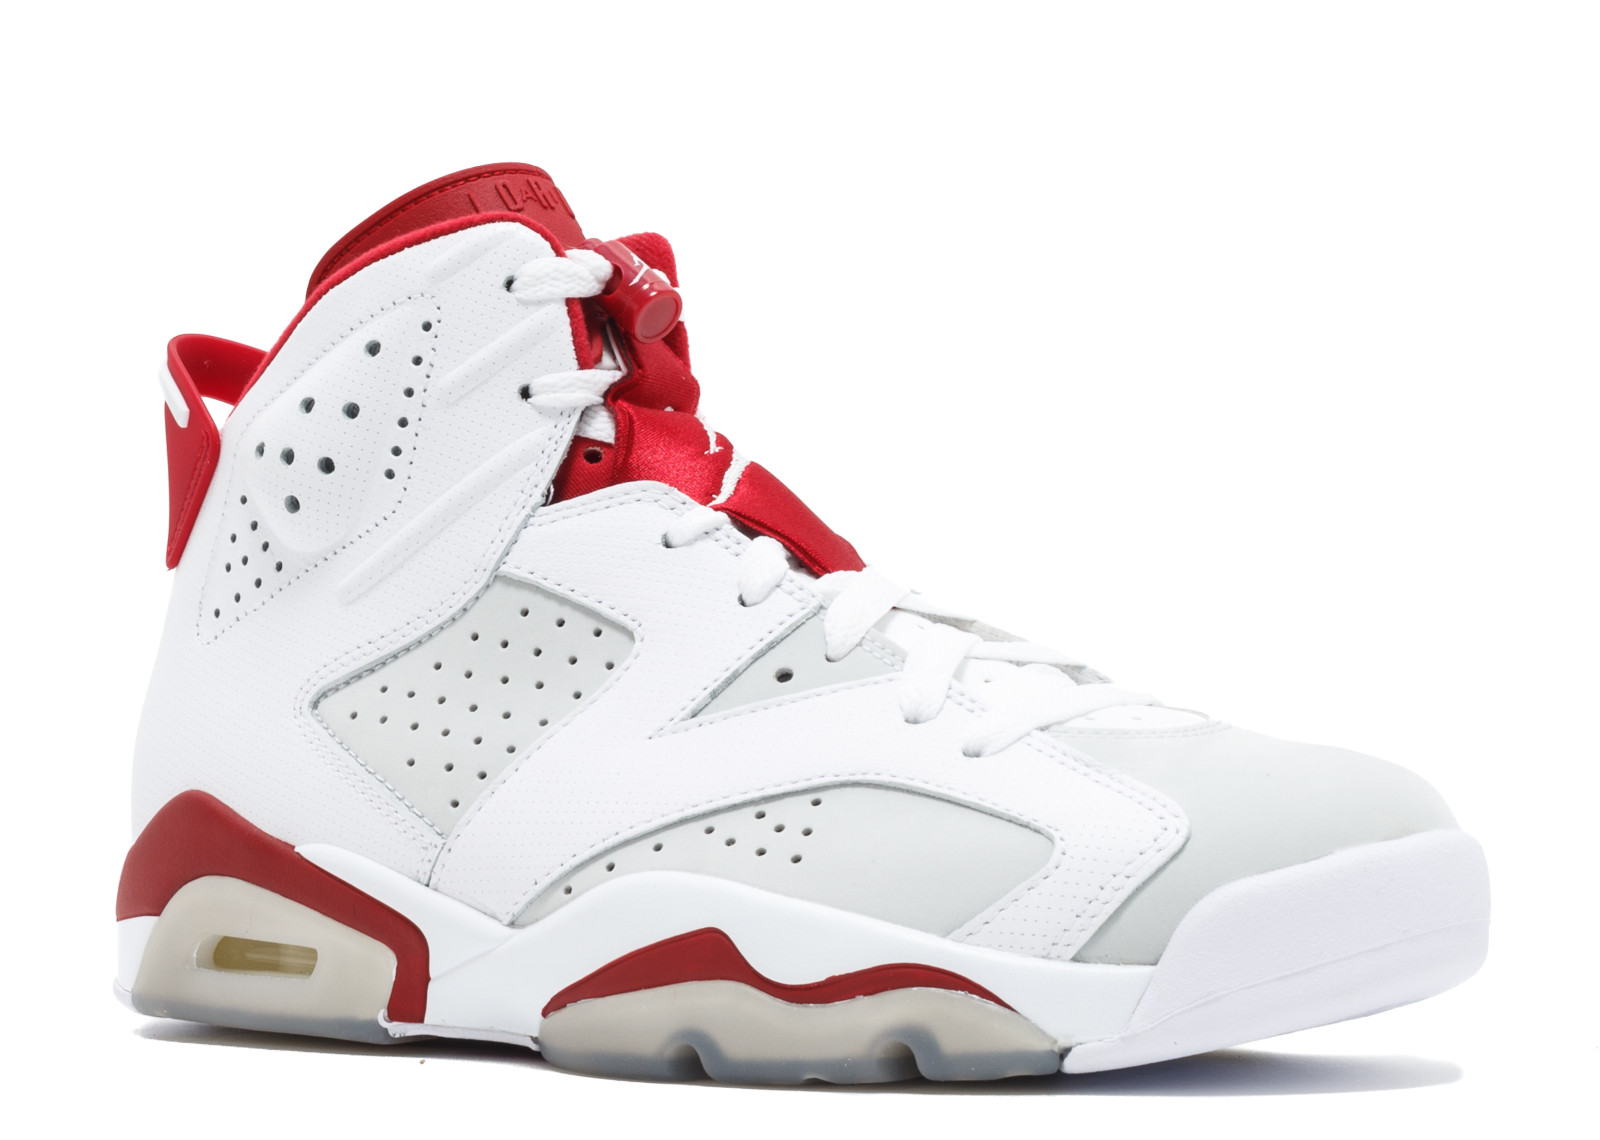 new style 8f8b0 27f30 Details about Air Jordan 6 Retro 'Alternate' - 384664-113 - Size 9.5